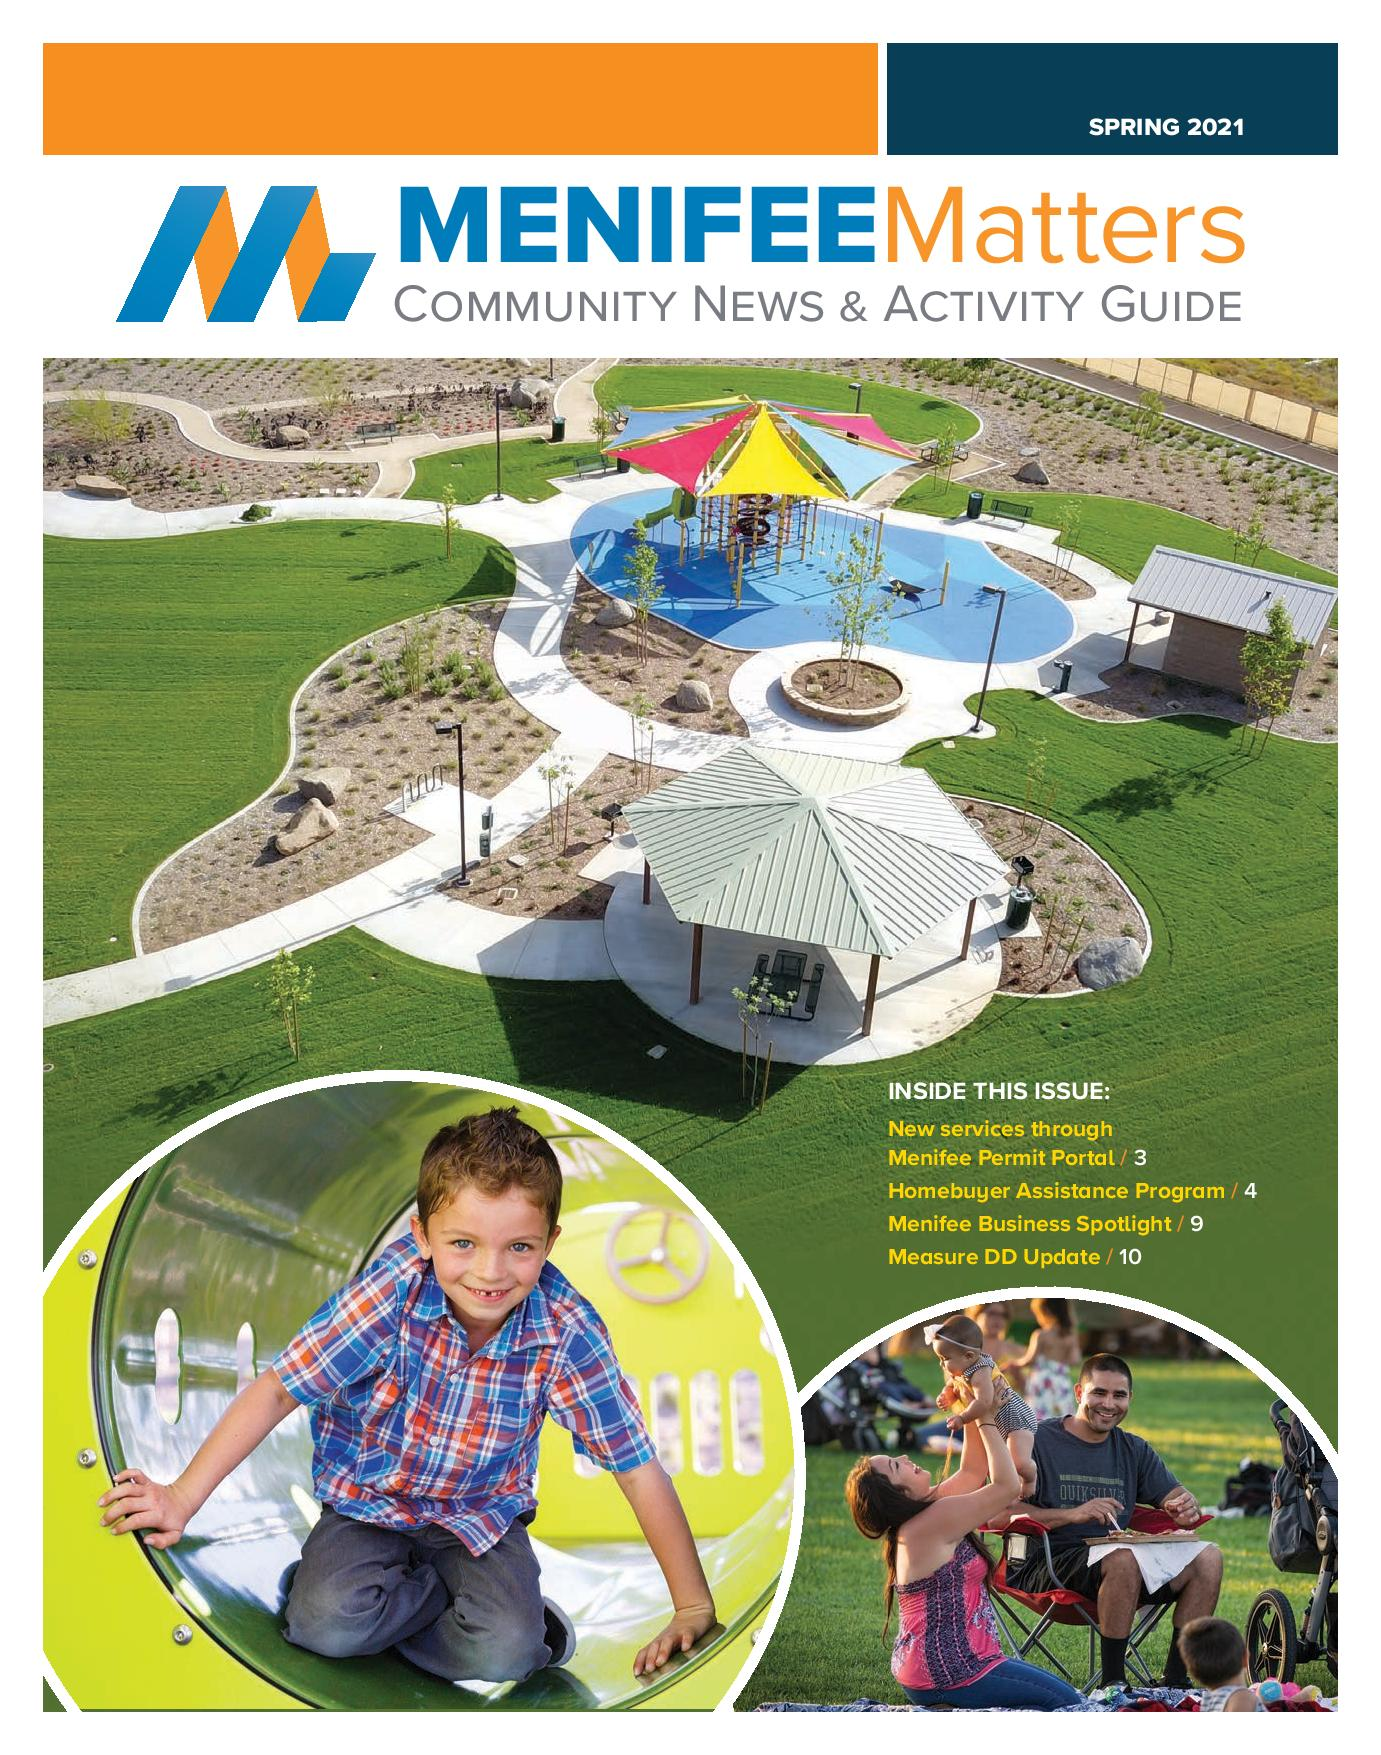 City of Menifee Spring 2021 Menifee Matters_Sharable-page-001